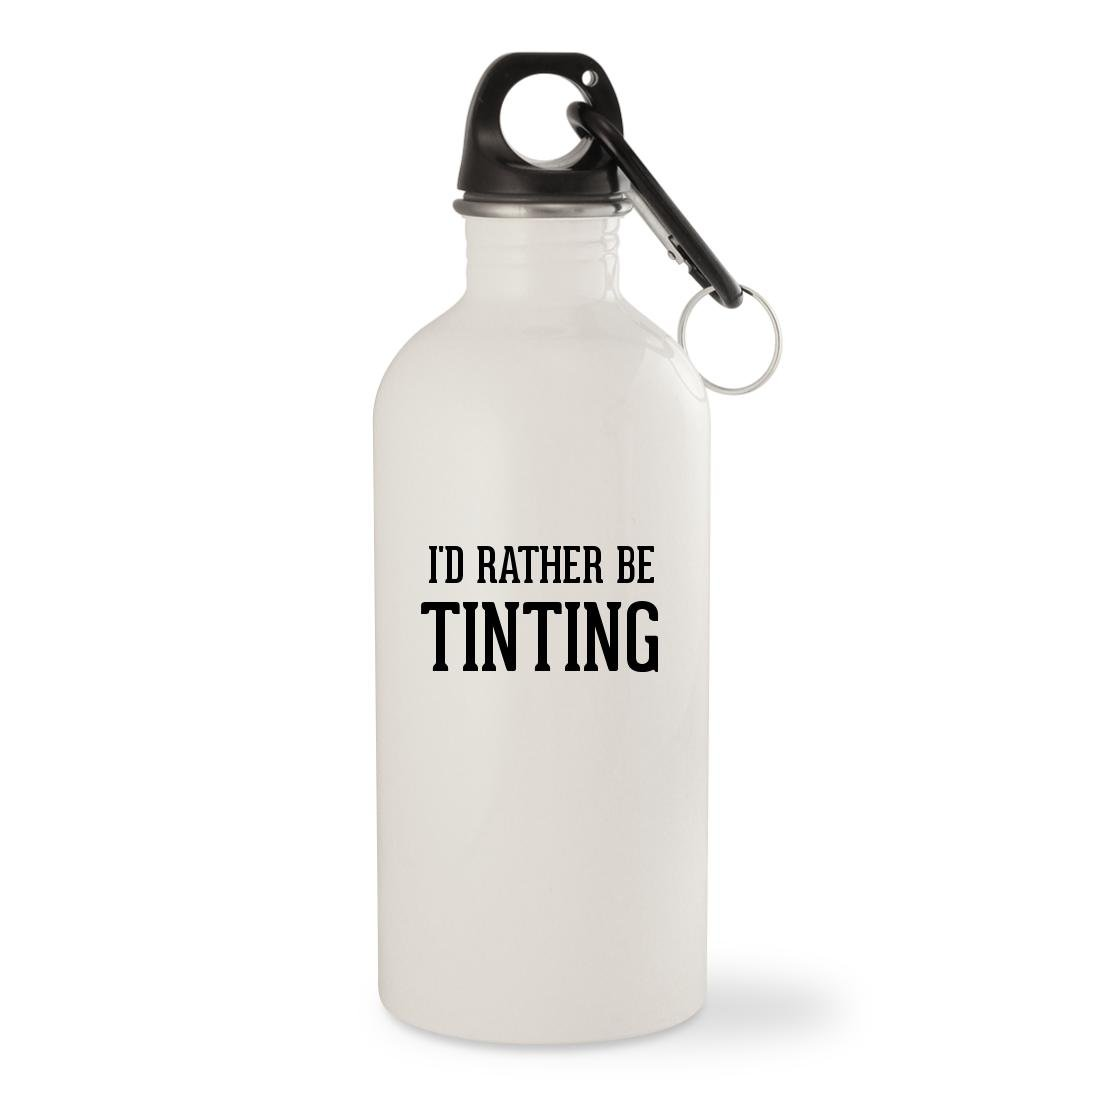 I'd Rather Be TINTING - White 20oz Stainless Steel Water Bottle with Carabiner